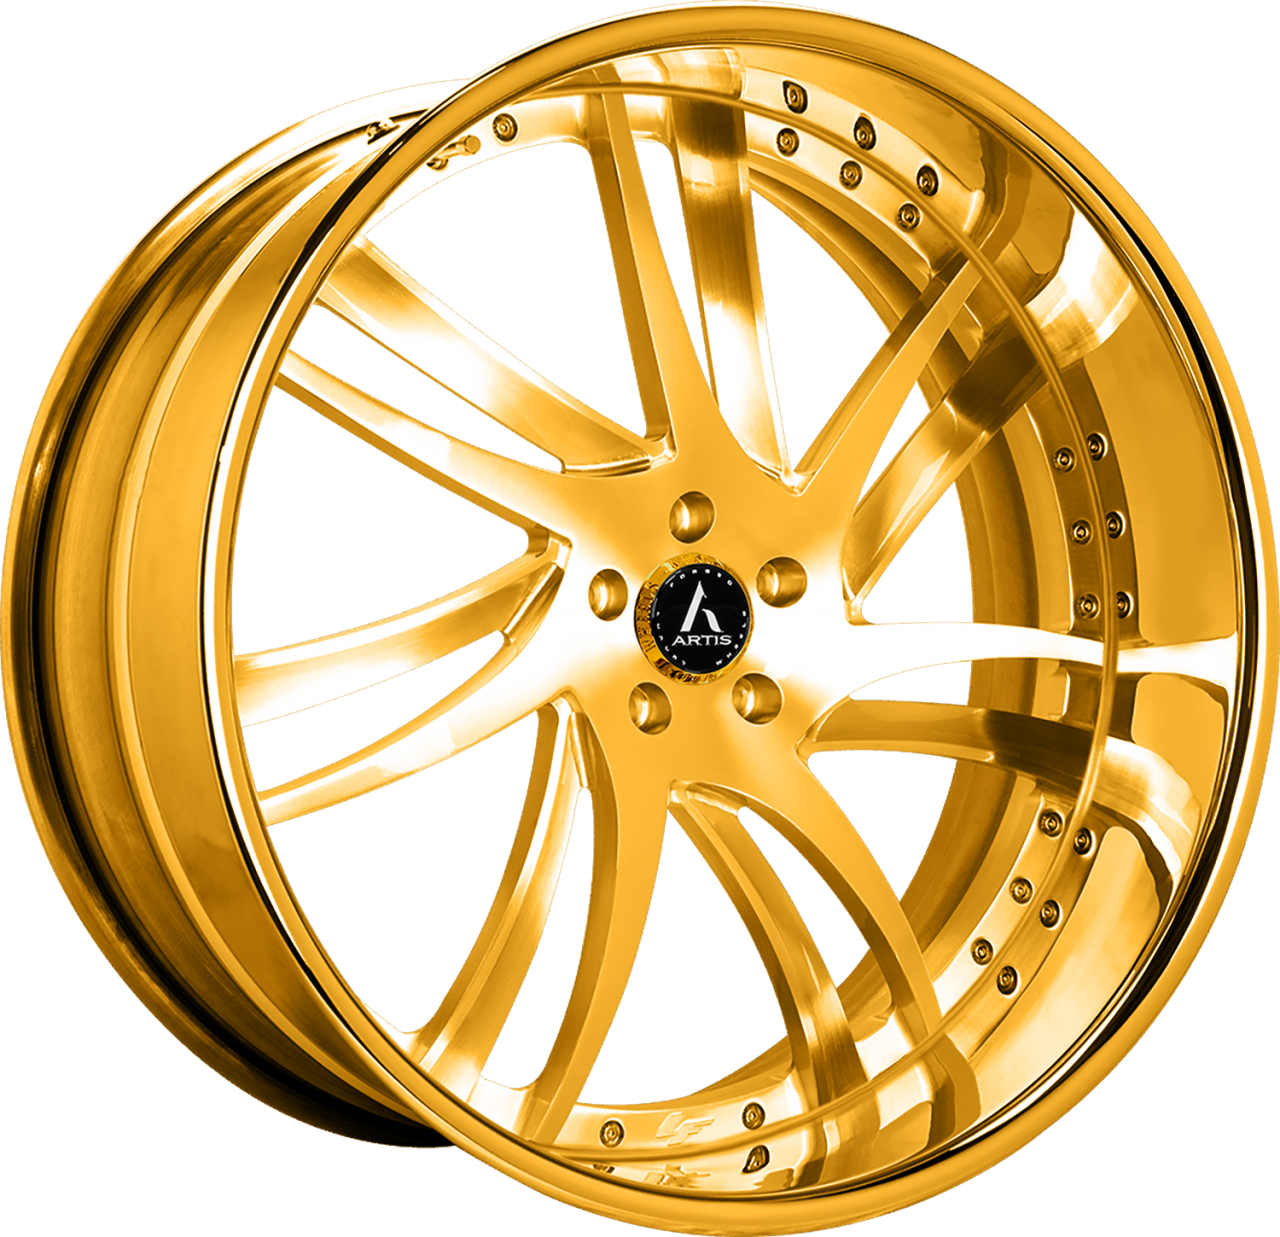 Artis Forged Profile-M wheel with Gold finish